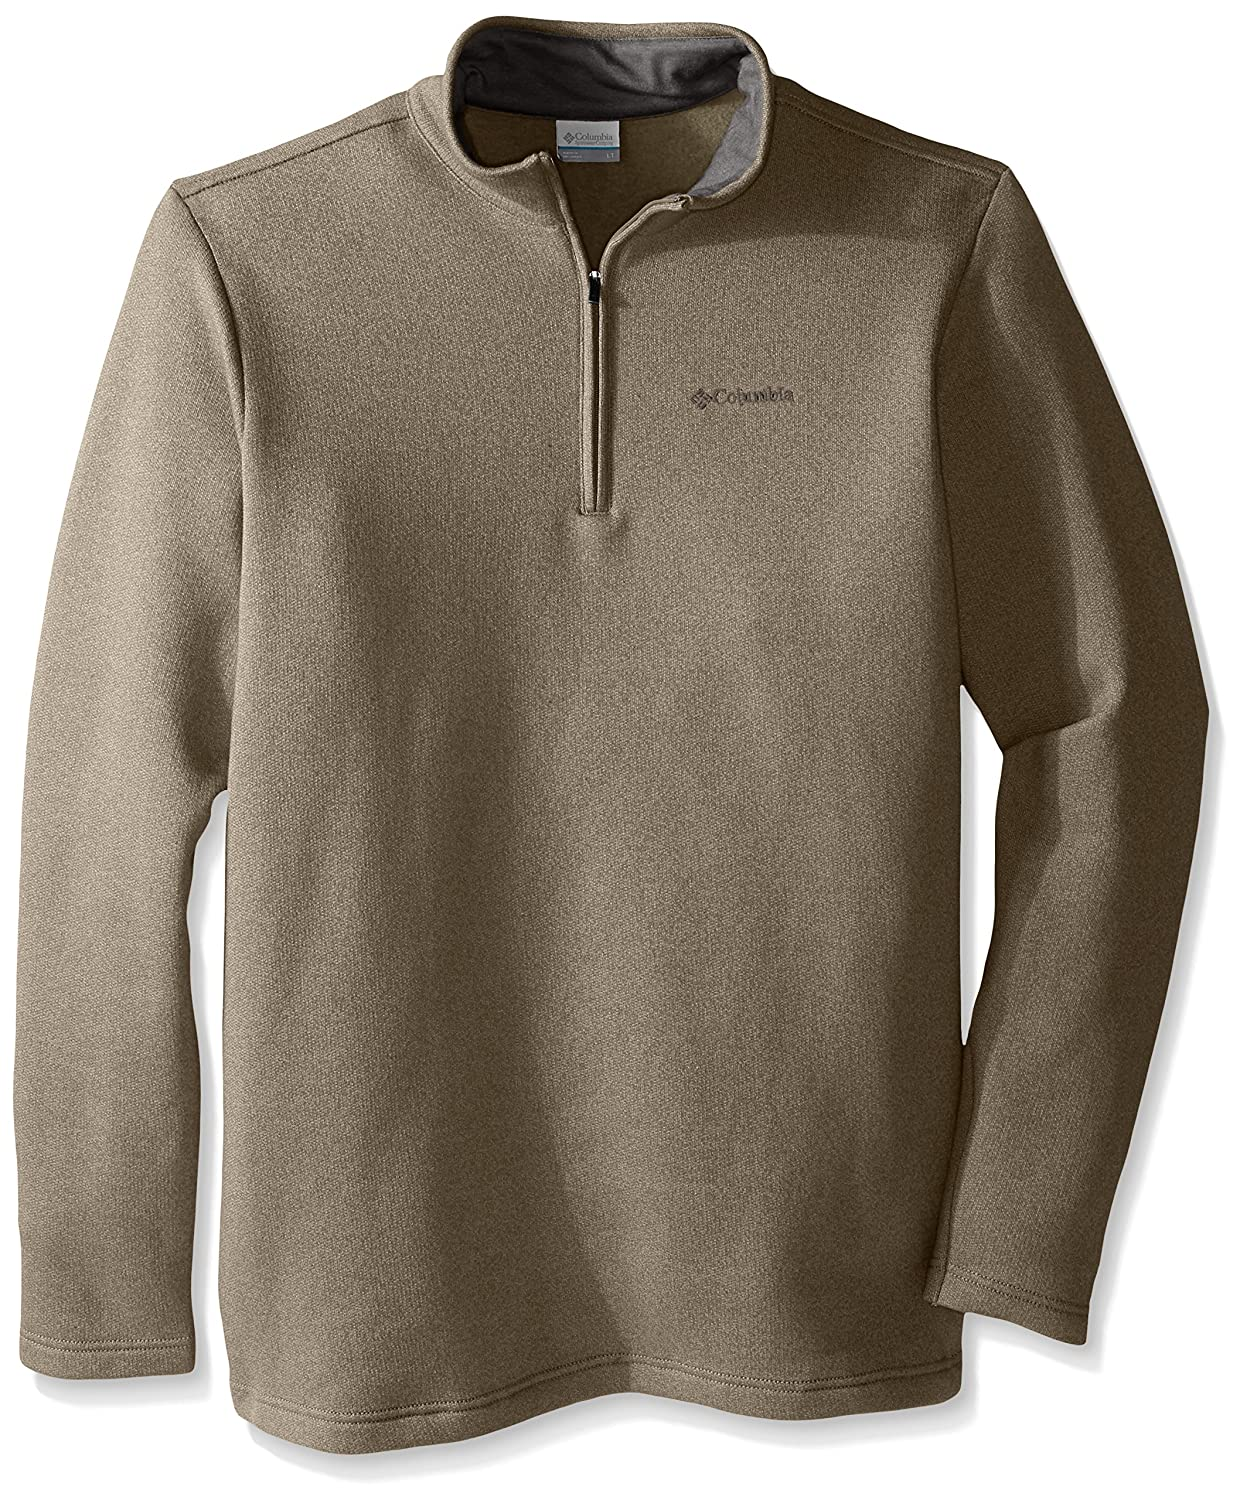 Columbia Men's Big Great Hart Mountain III Big & Tall Half Zip Columbia Men's Sportswear 1625232-1